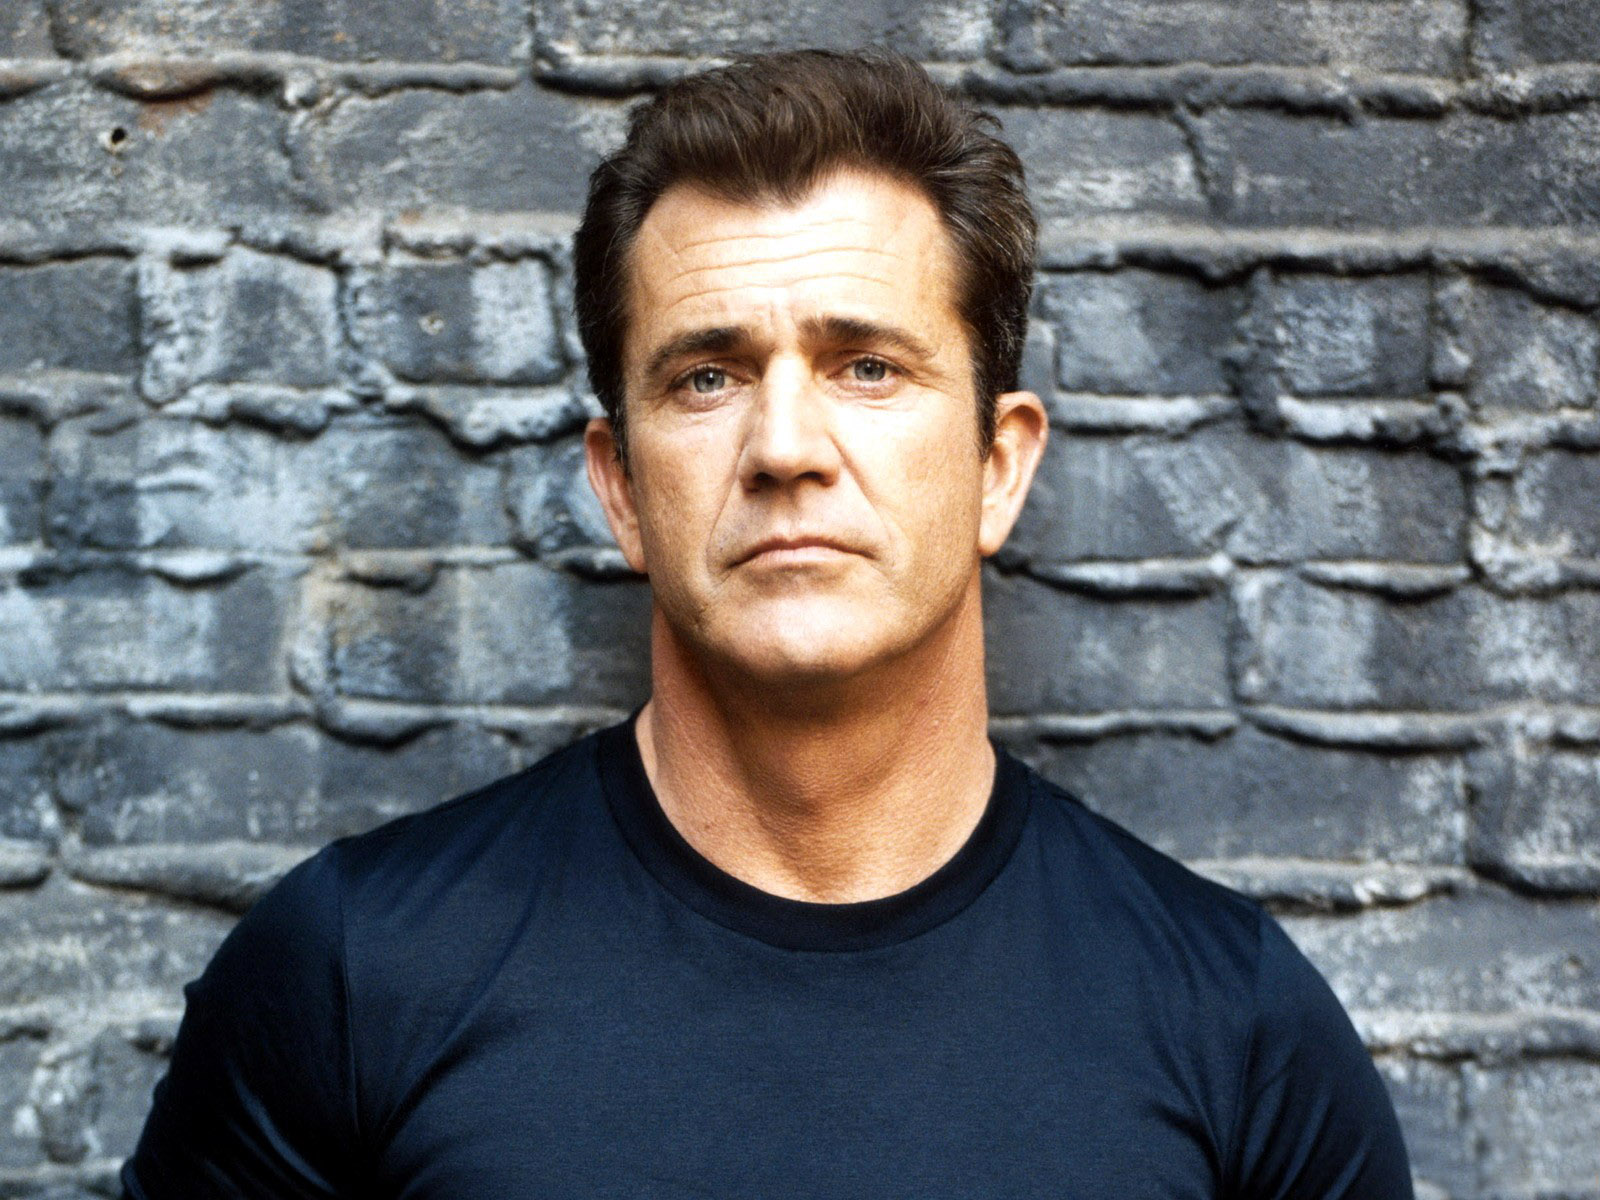 Mel Gibson Wallpapers High Resolution and Quality DownloadMel Gibson 1600x1200